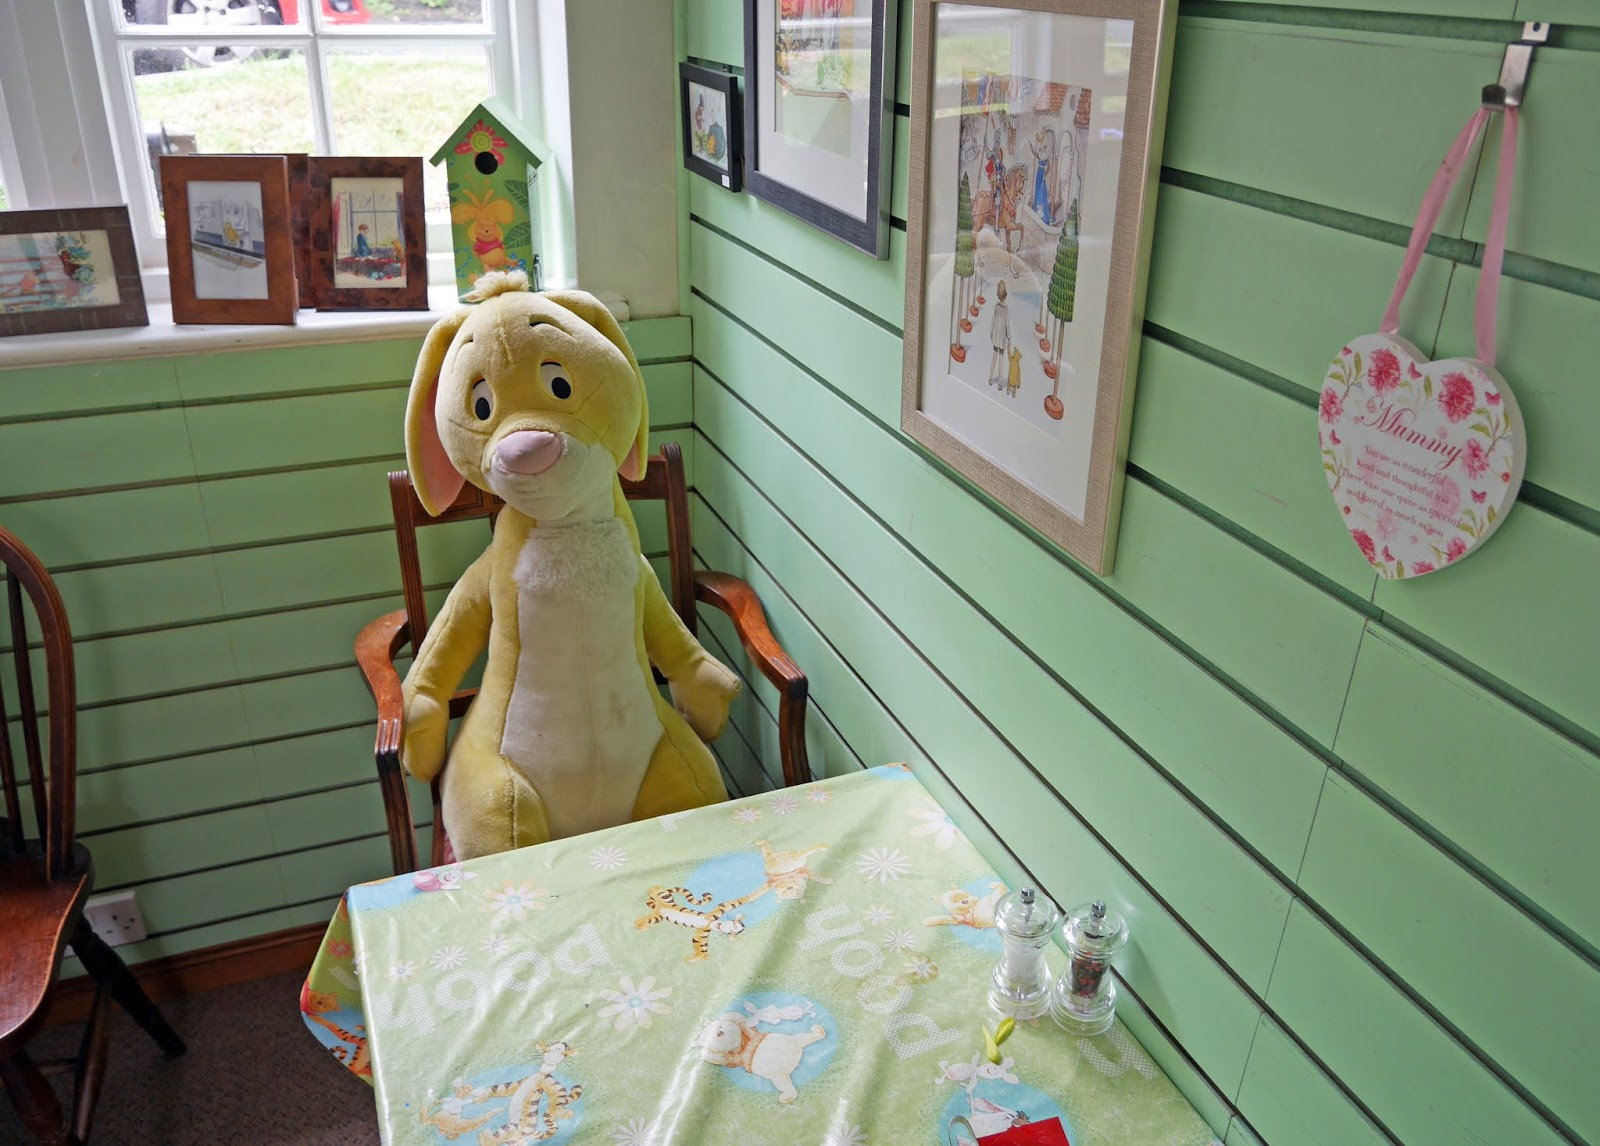 Rabbit sitting at a table at Pooh Corner, Ashdown Forest